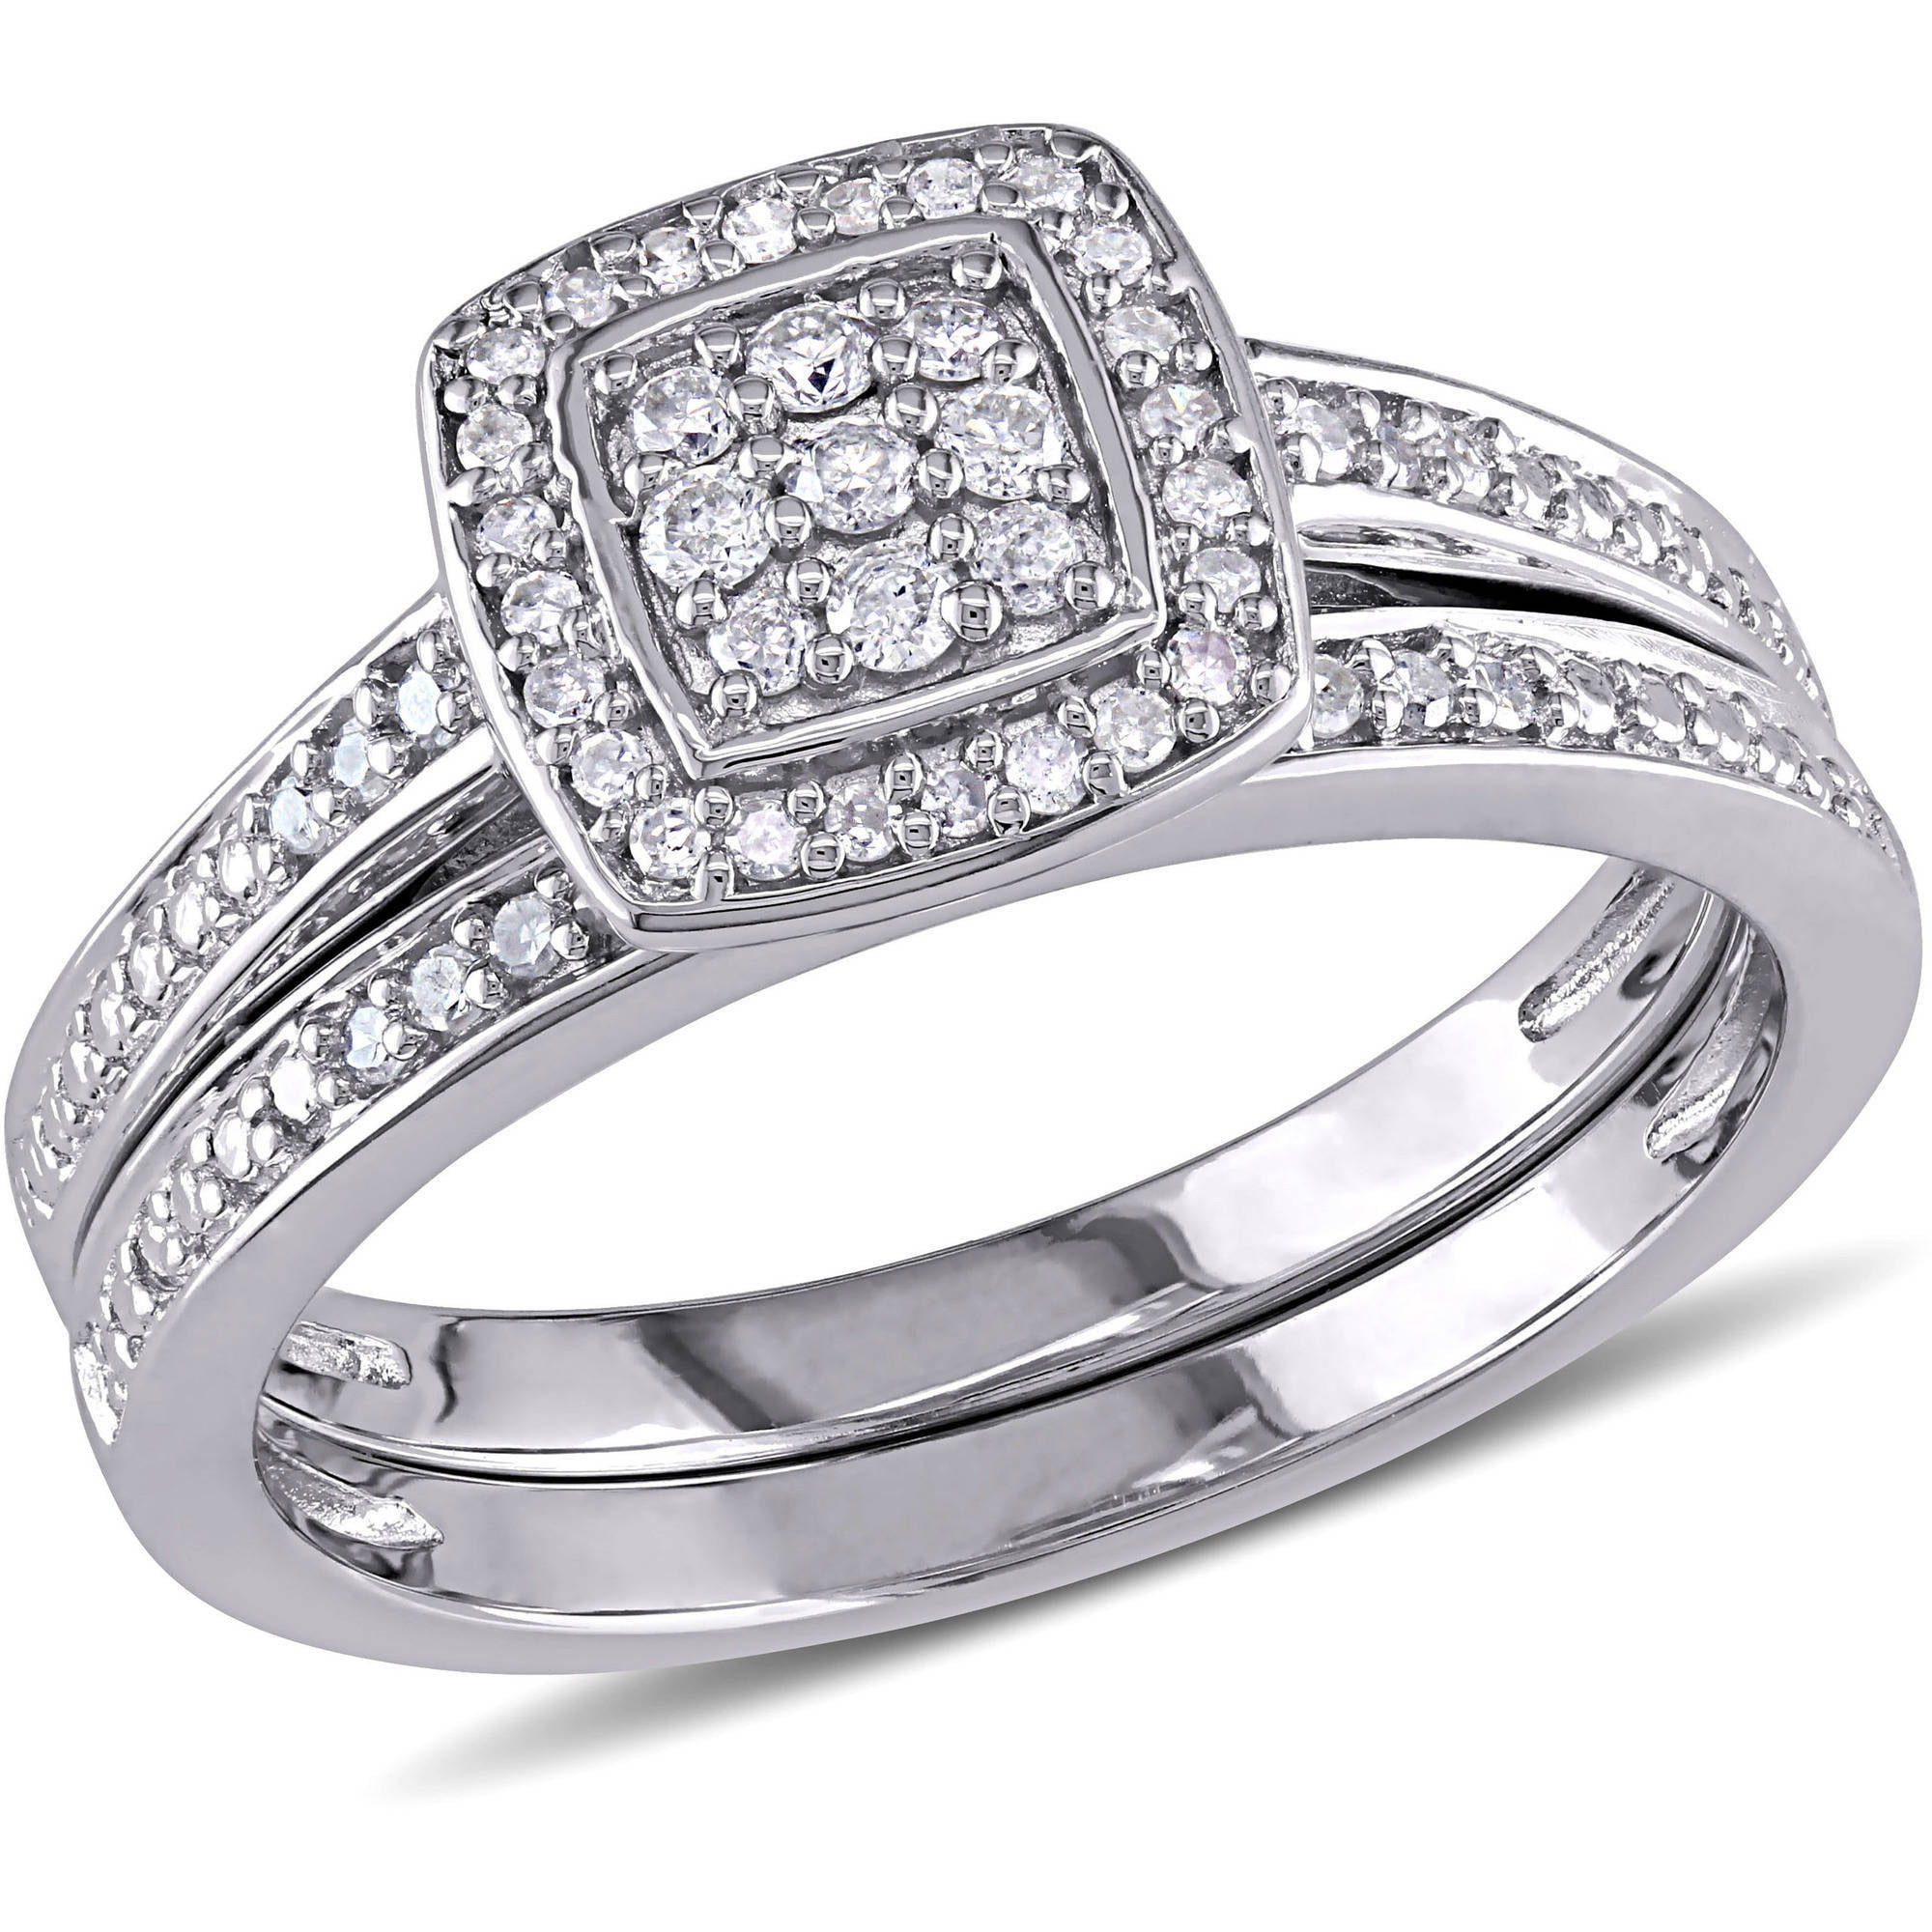 Miabella 14 Carat TW Diamond Sterling Silver Halo Bridal Set